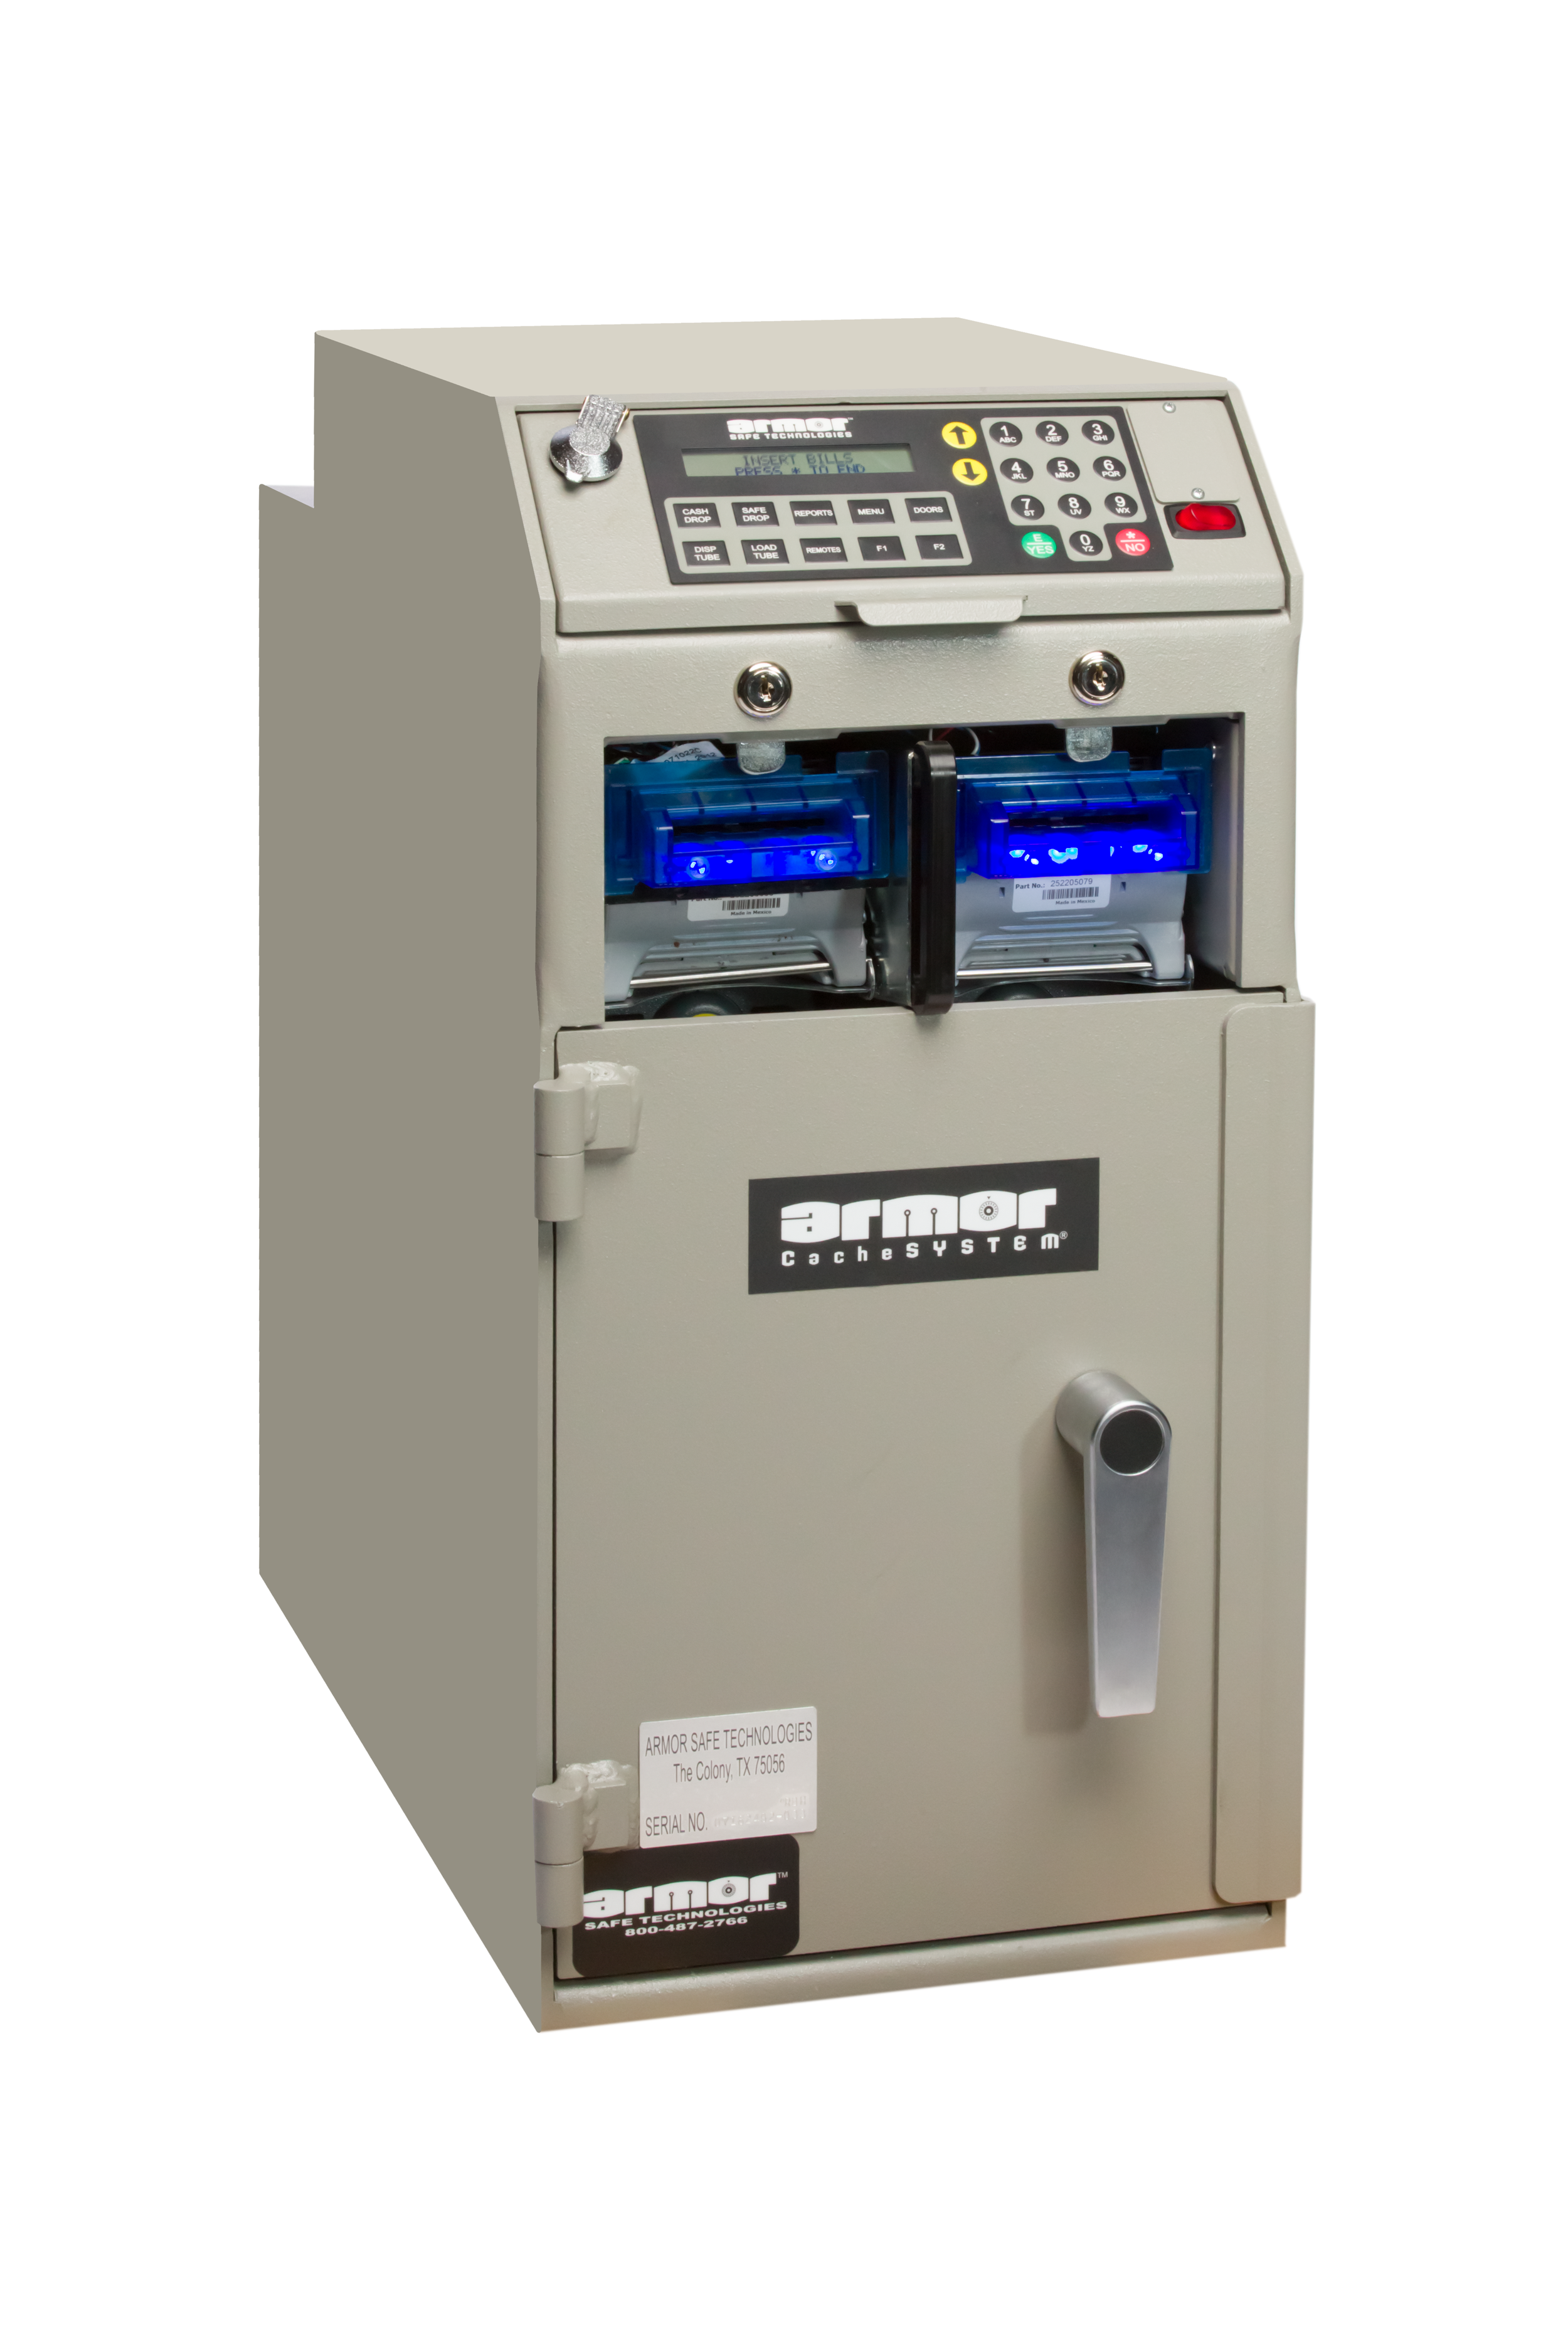 CacheSYSTEM 2400RBH   Shown equipped with  2 single-note bill validators